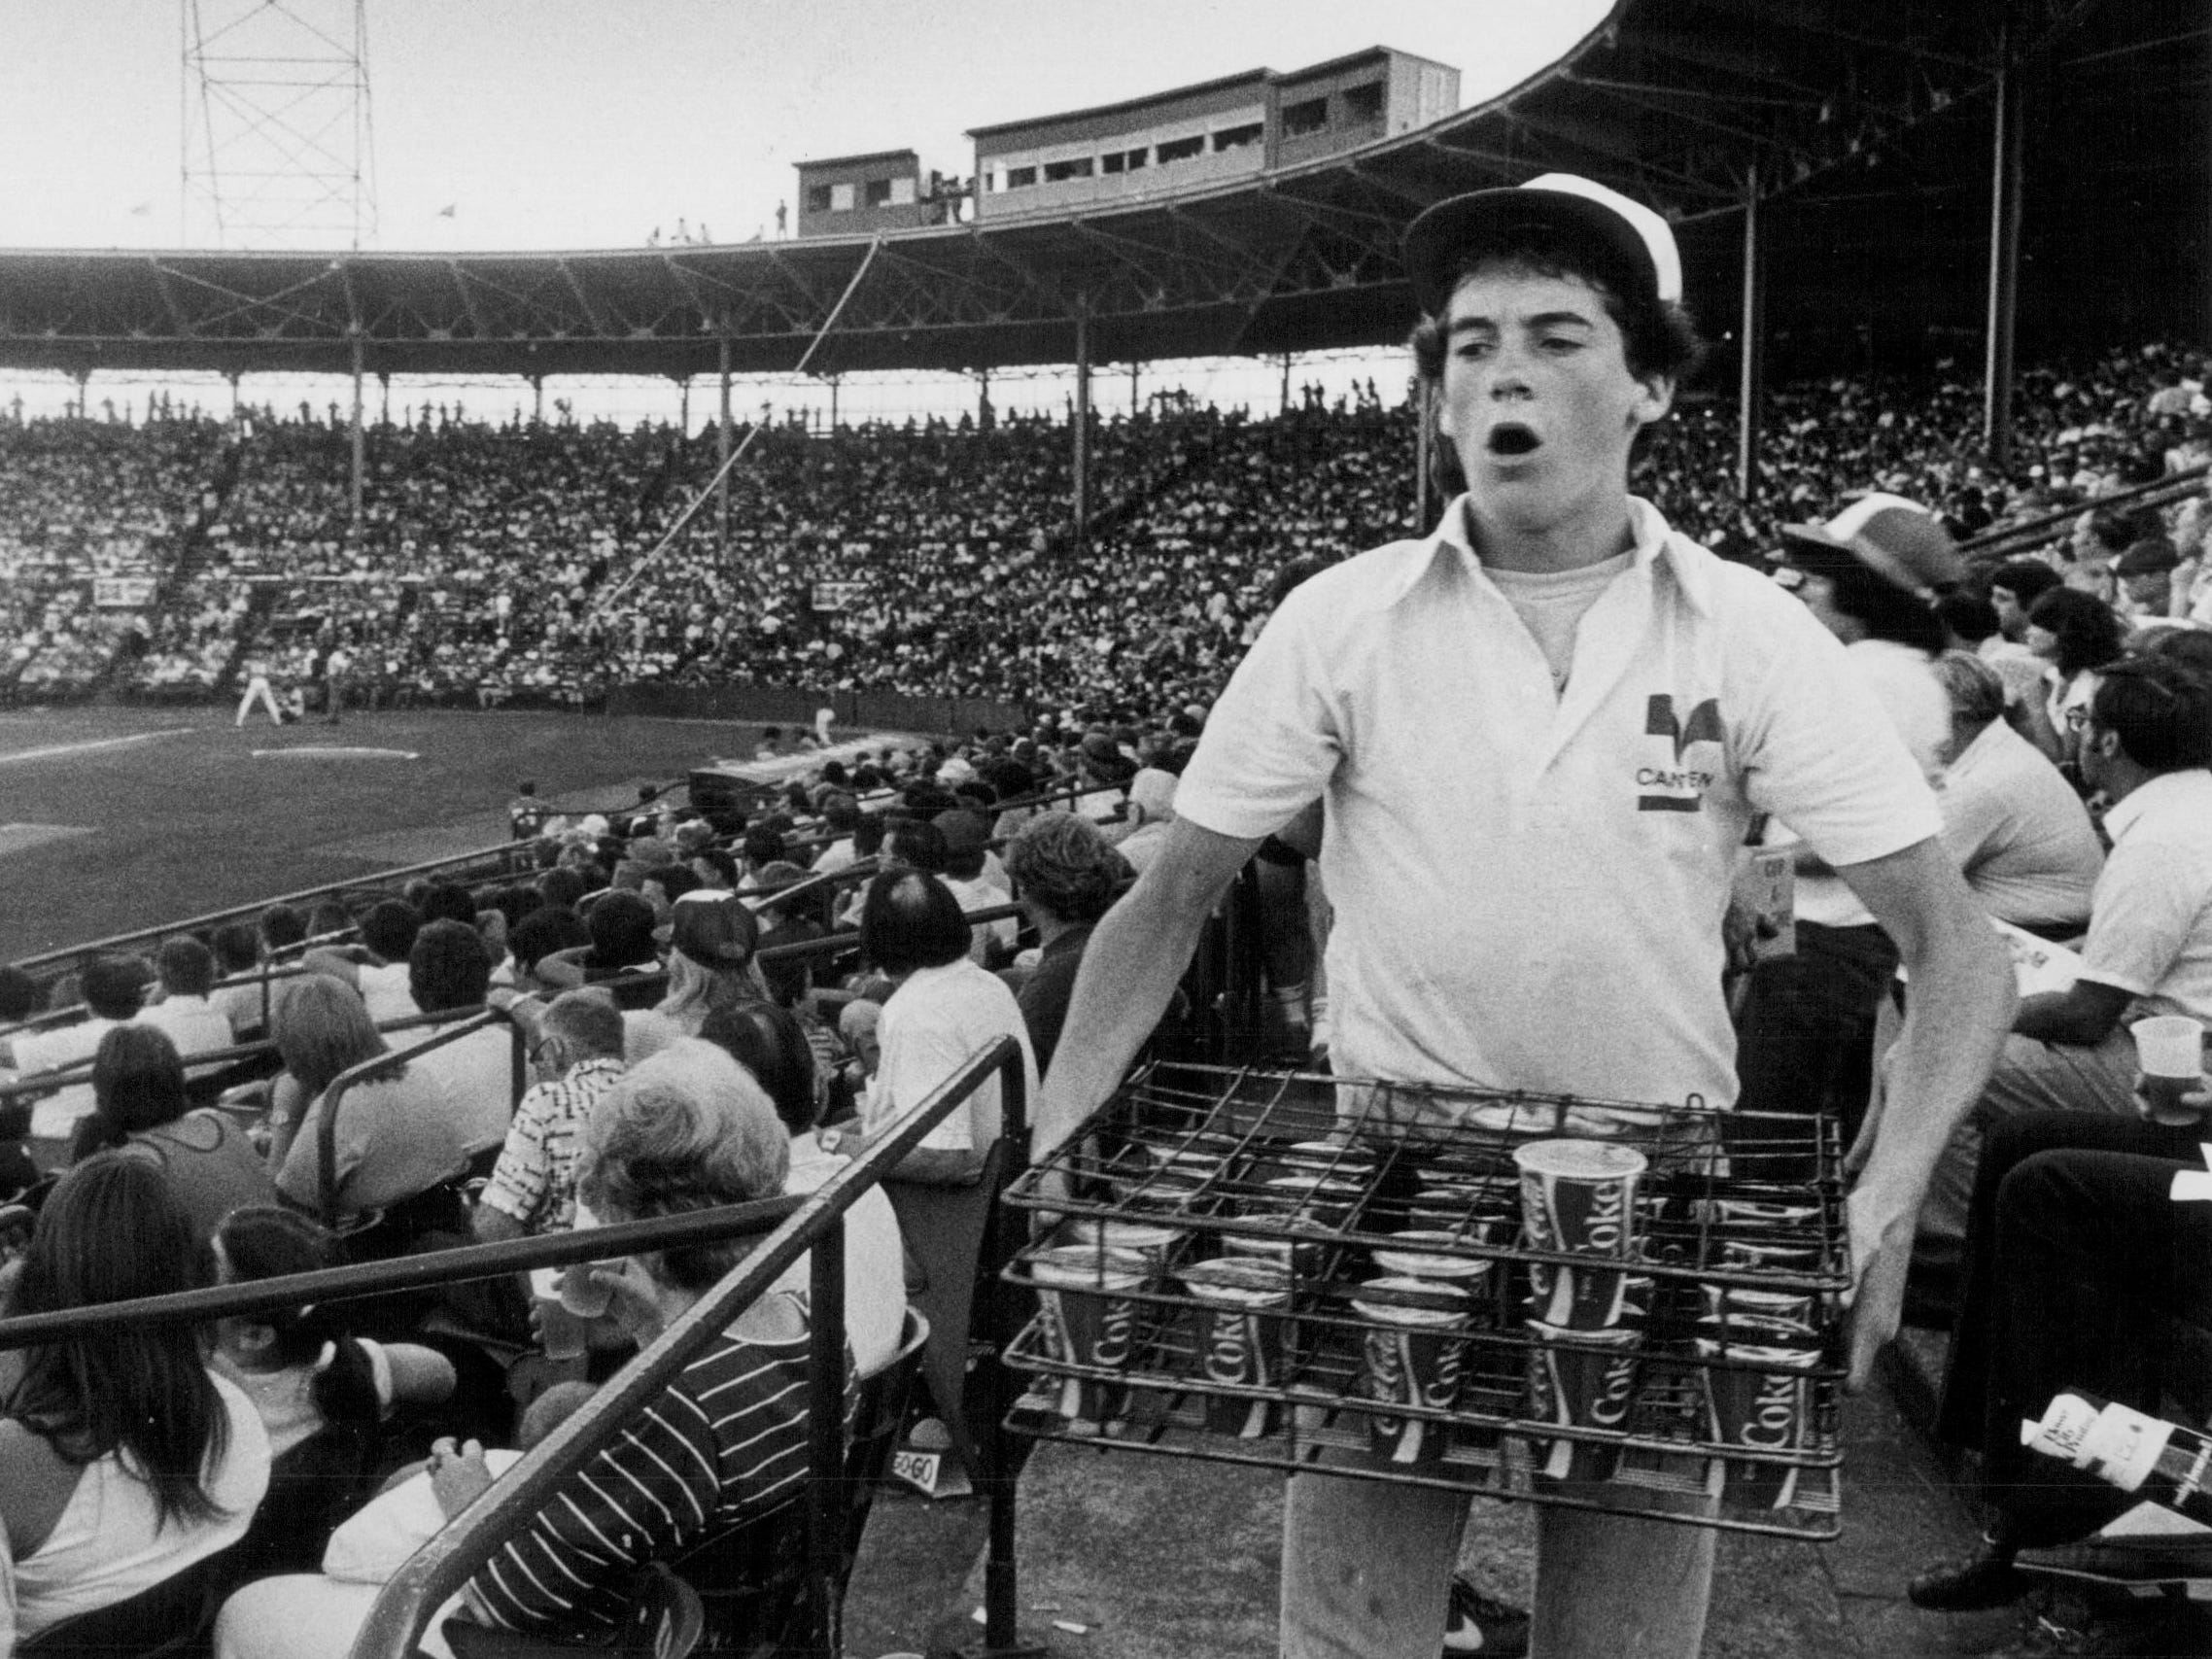 In this 1982 photo, Tim Lum sells soda at Silver Stadium.